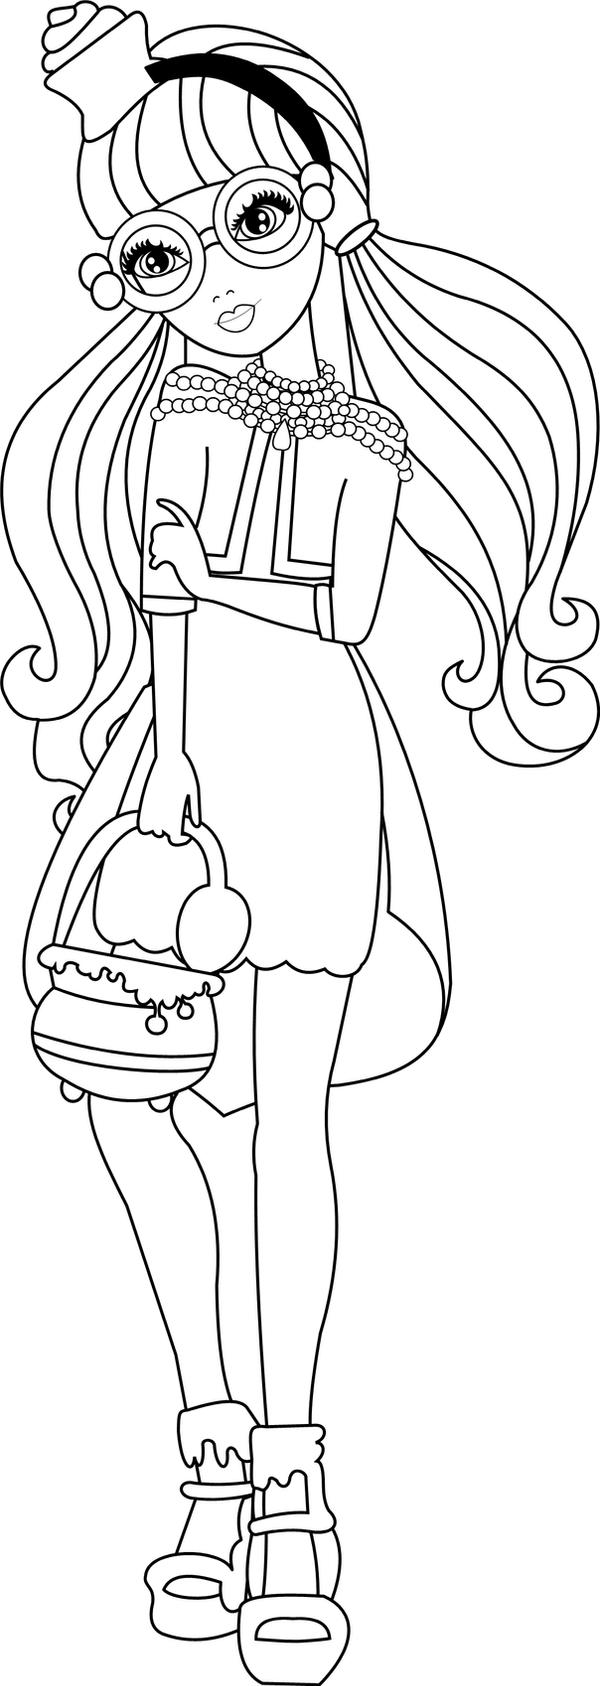 Colouring pages for ever after high -  Ginger Coloring Ever After High By Jessicajanet